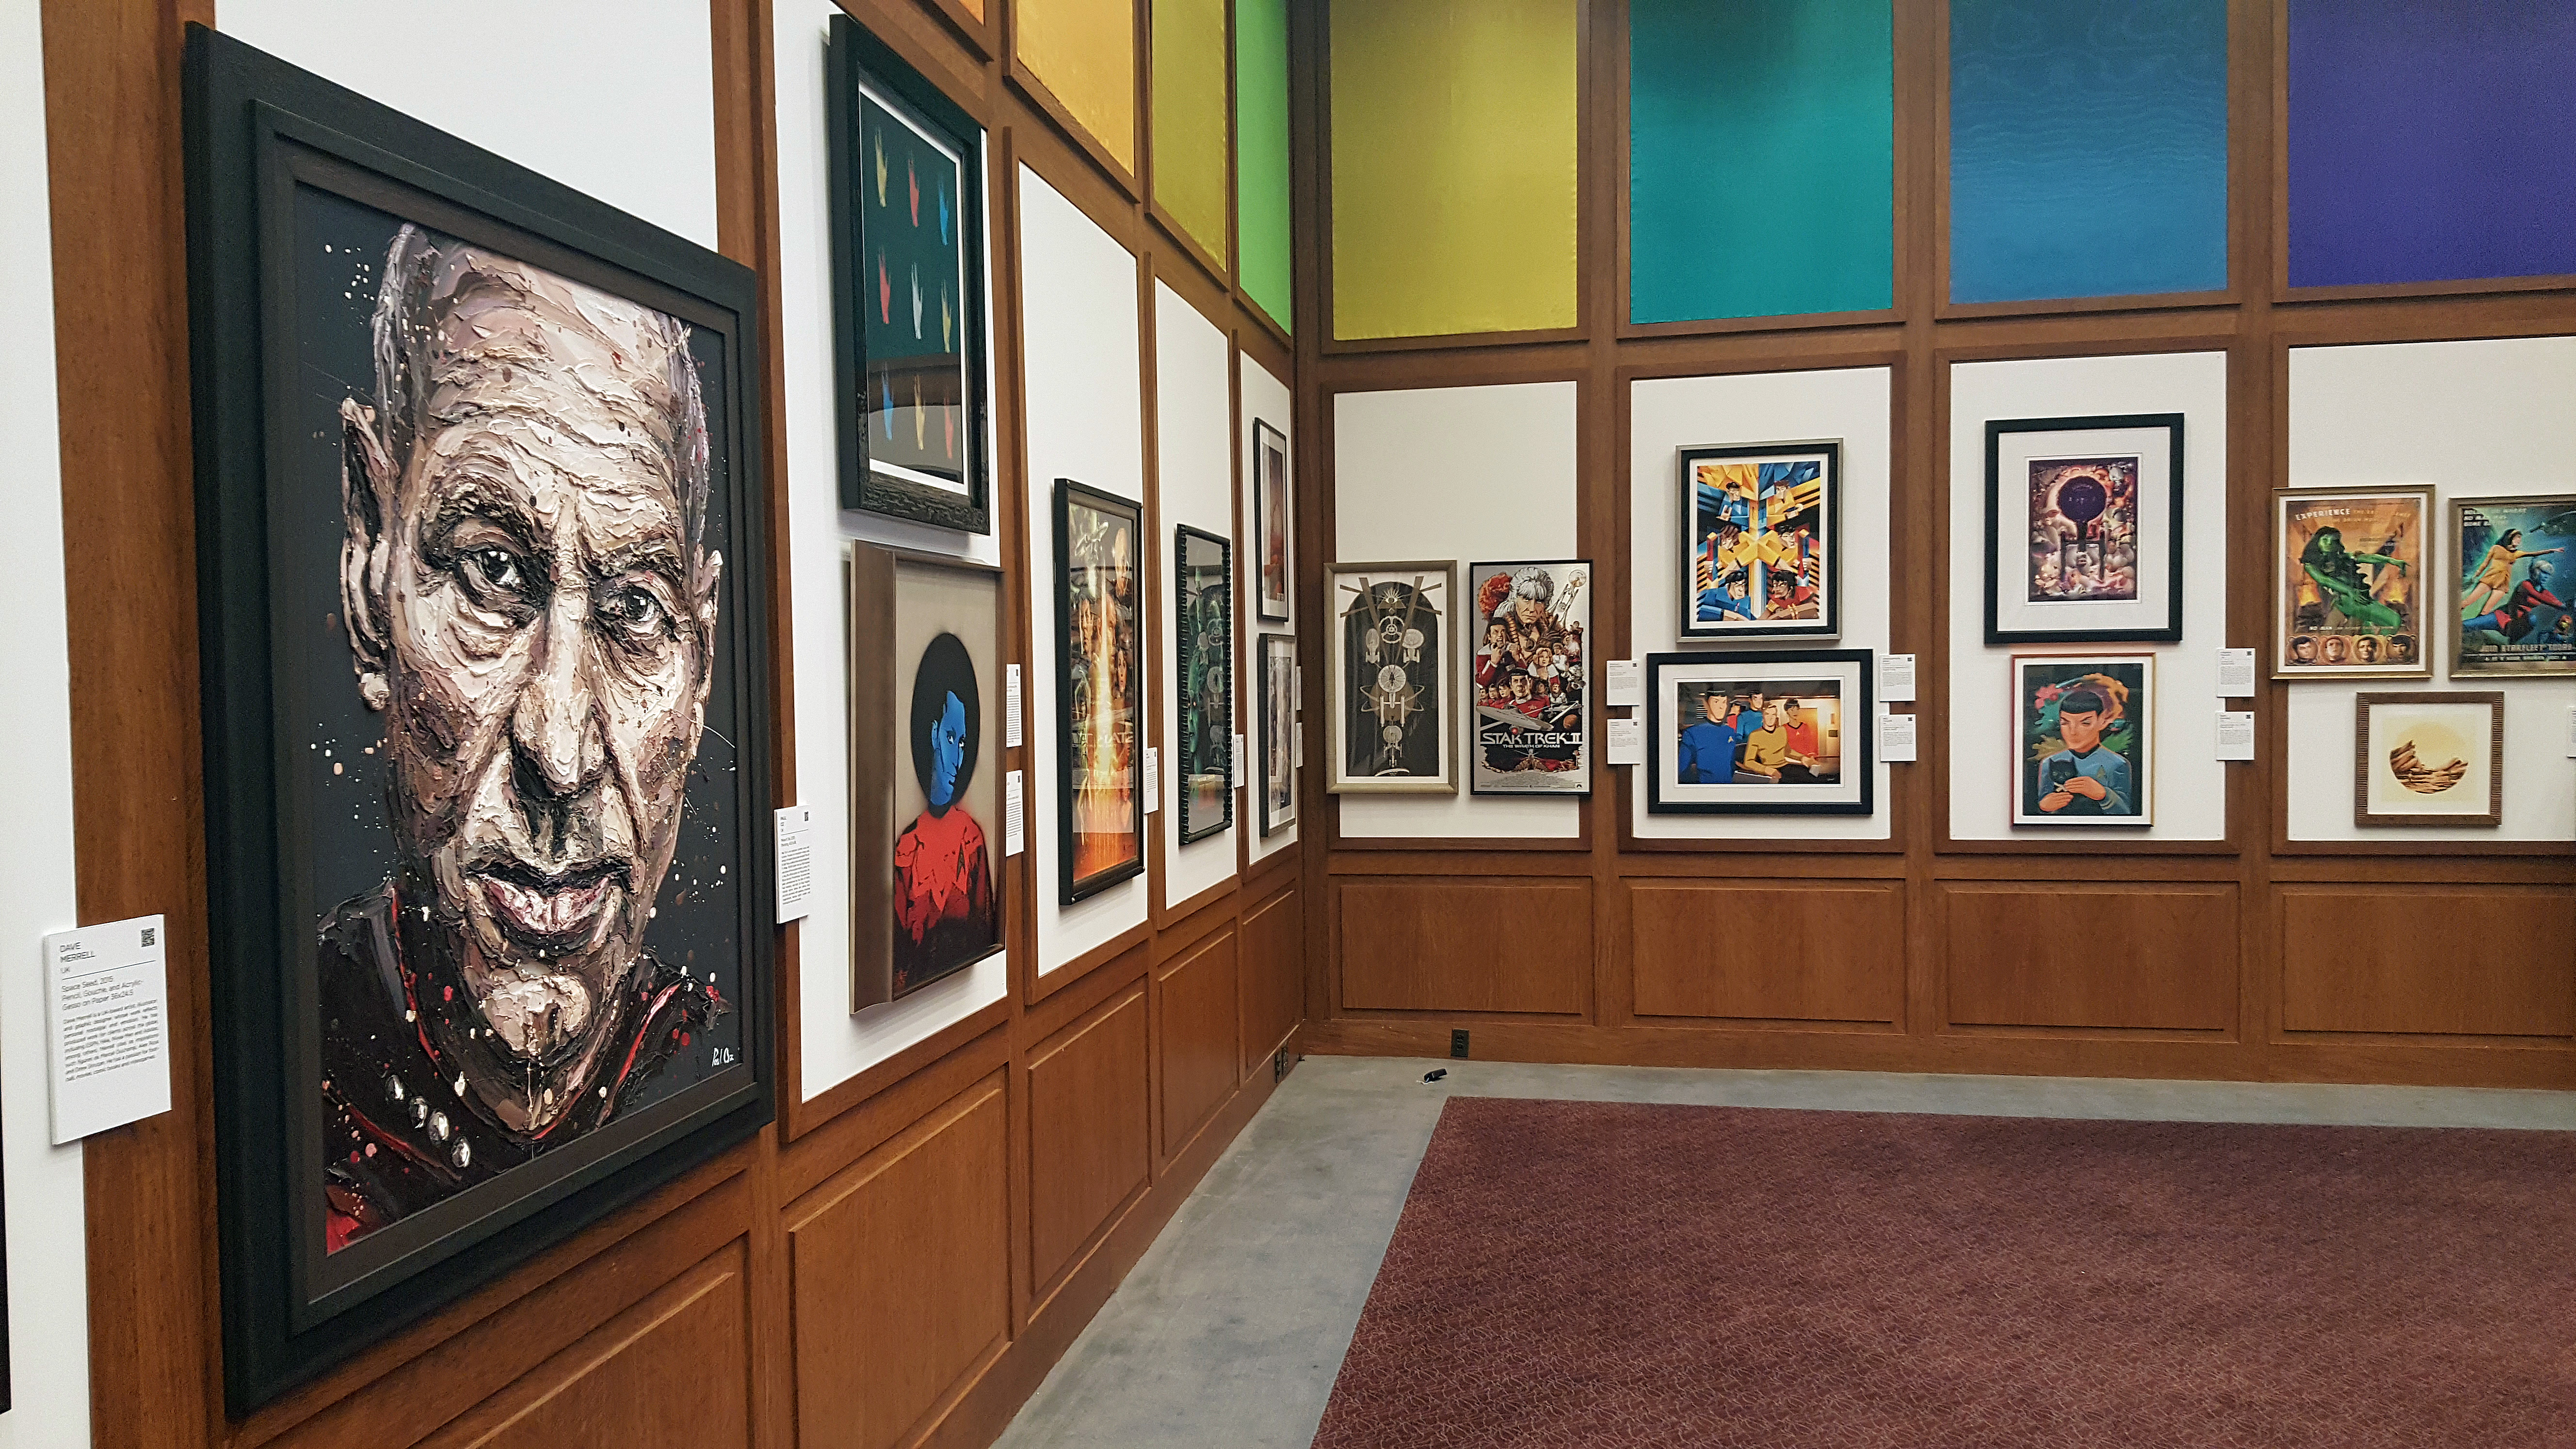 'Star Trek' Celebrates 50th Anniversary With Traveling Art Gallery